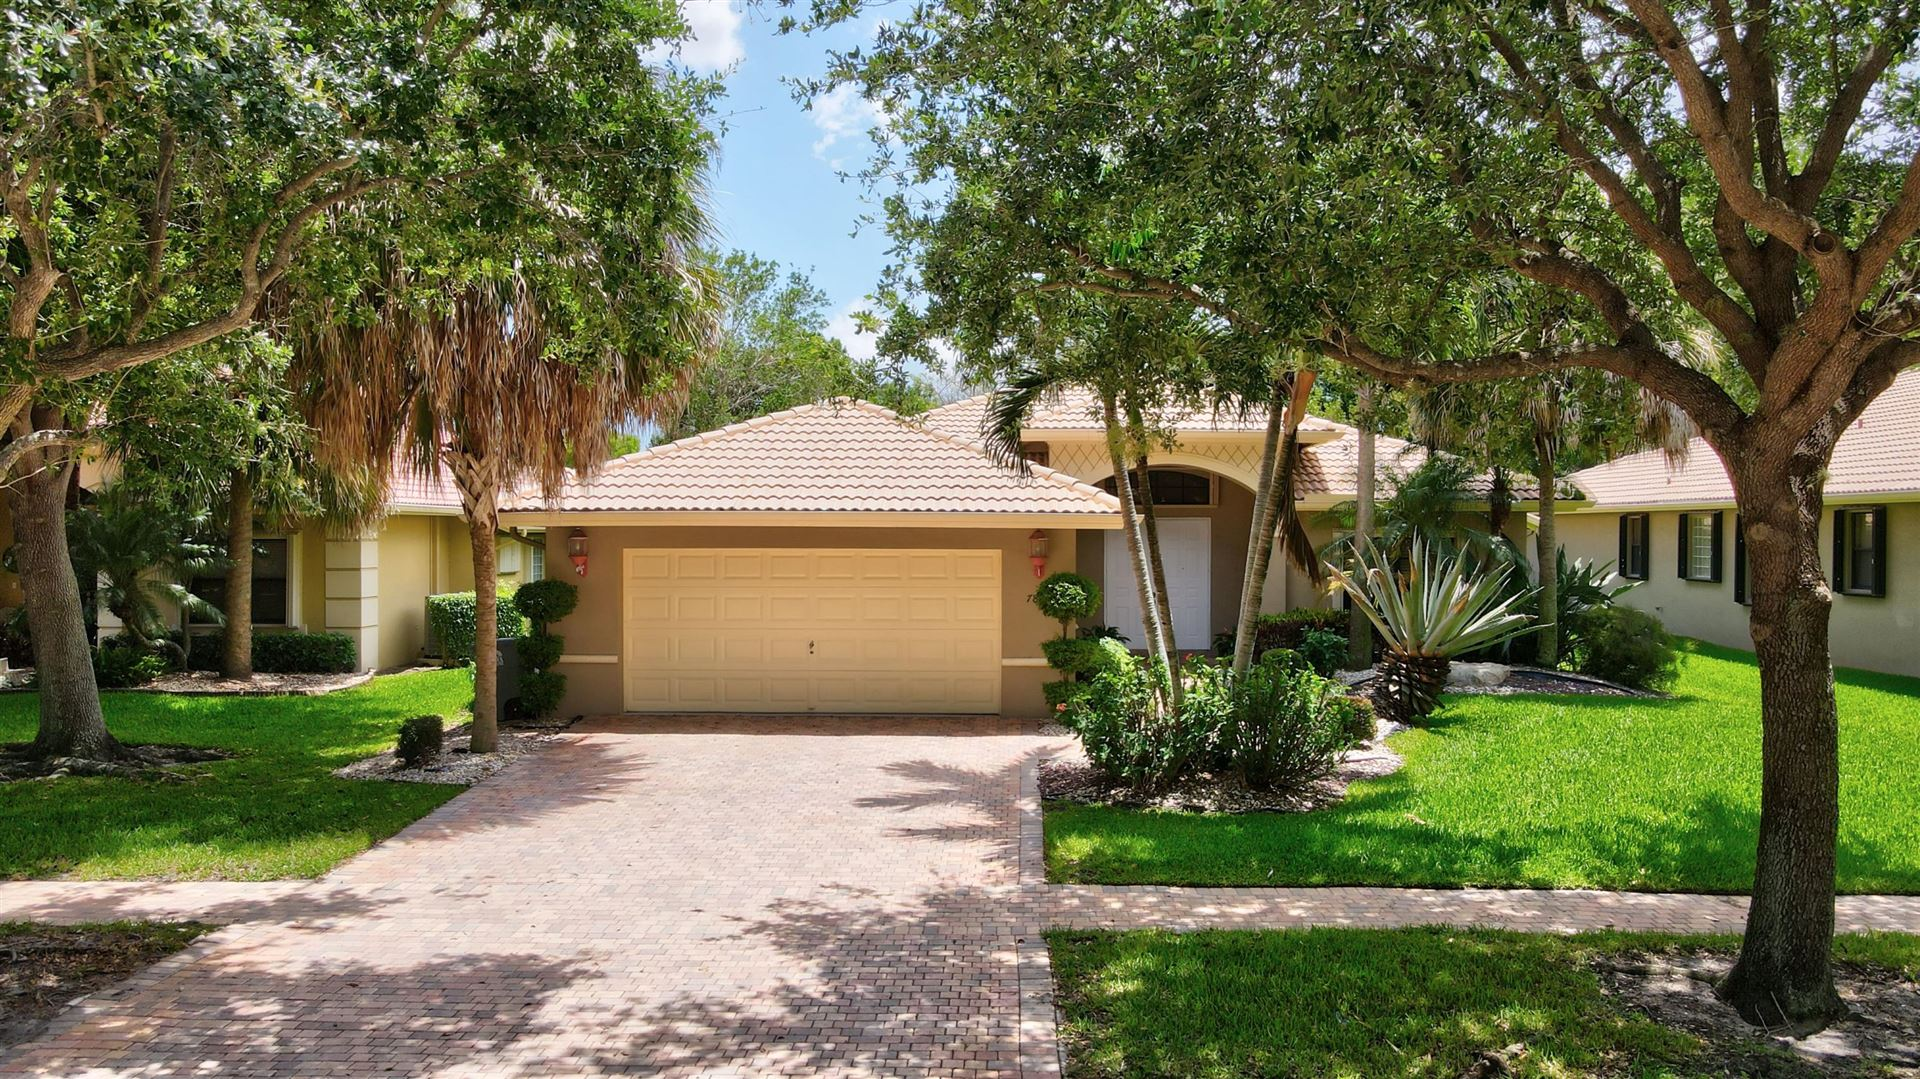 7855 Via Grande, Boynton Beach, FL 33437 - MLS#: RX-10714379